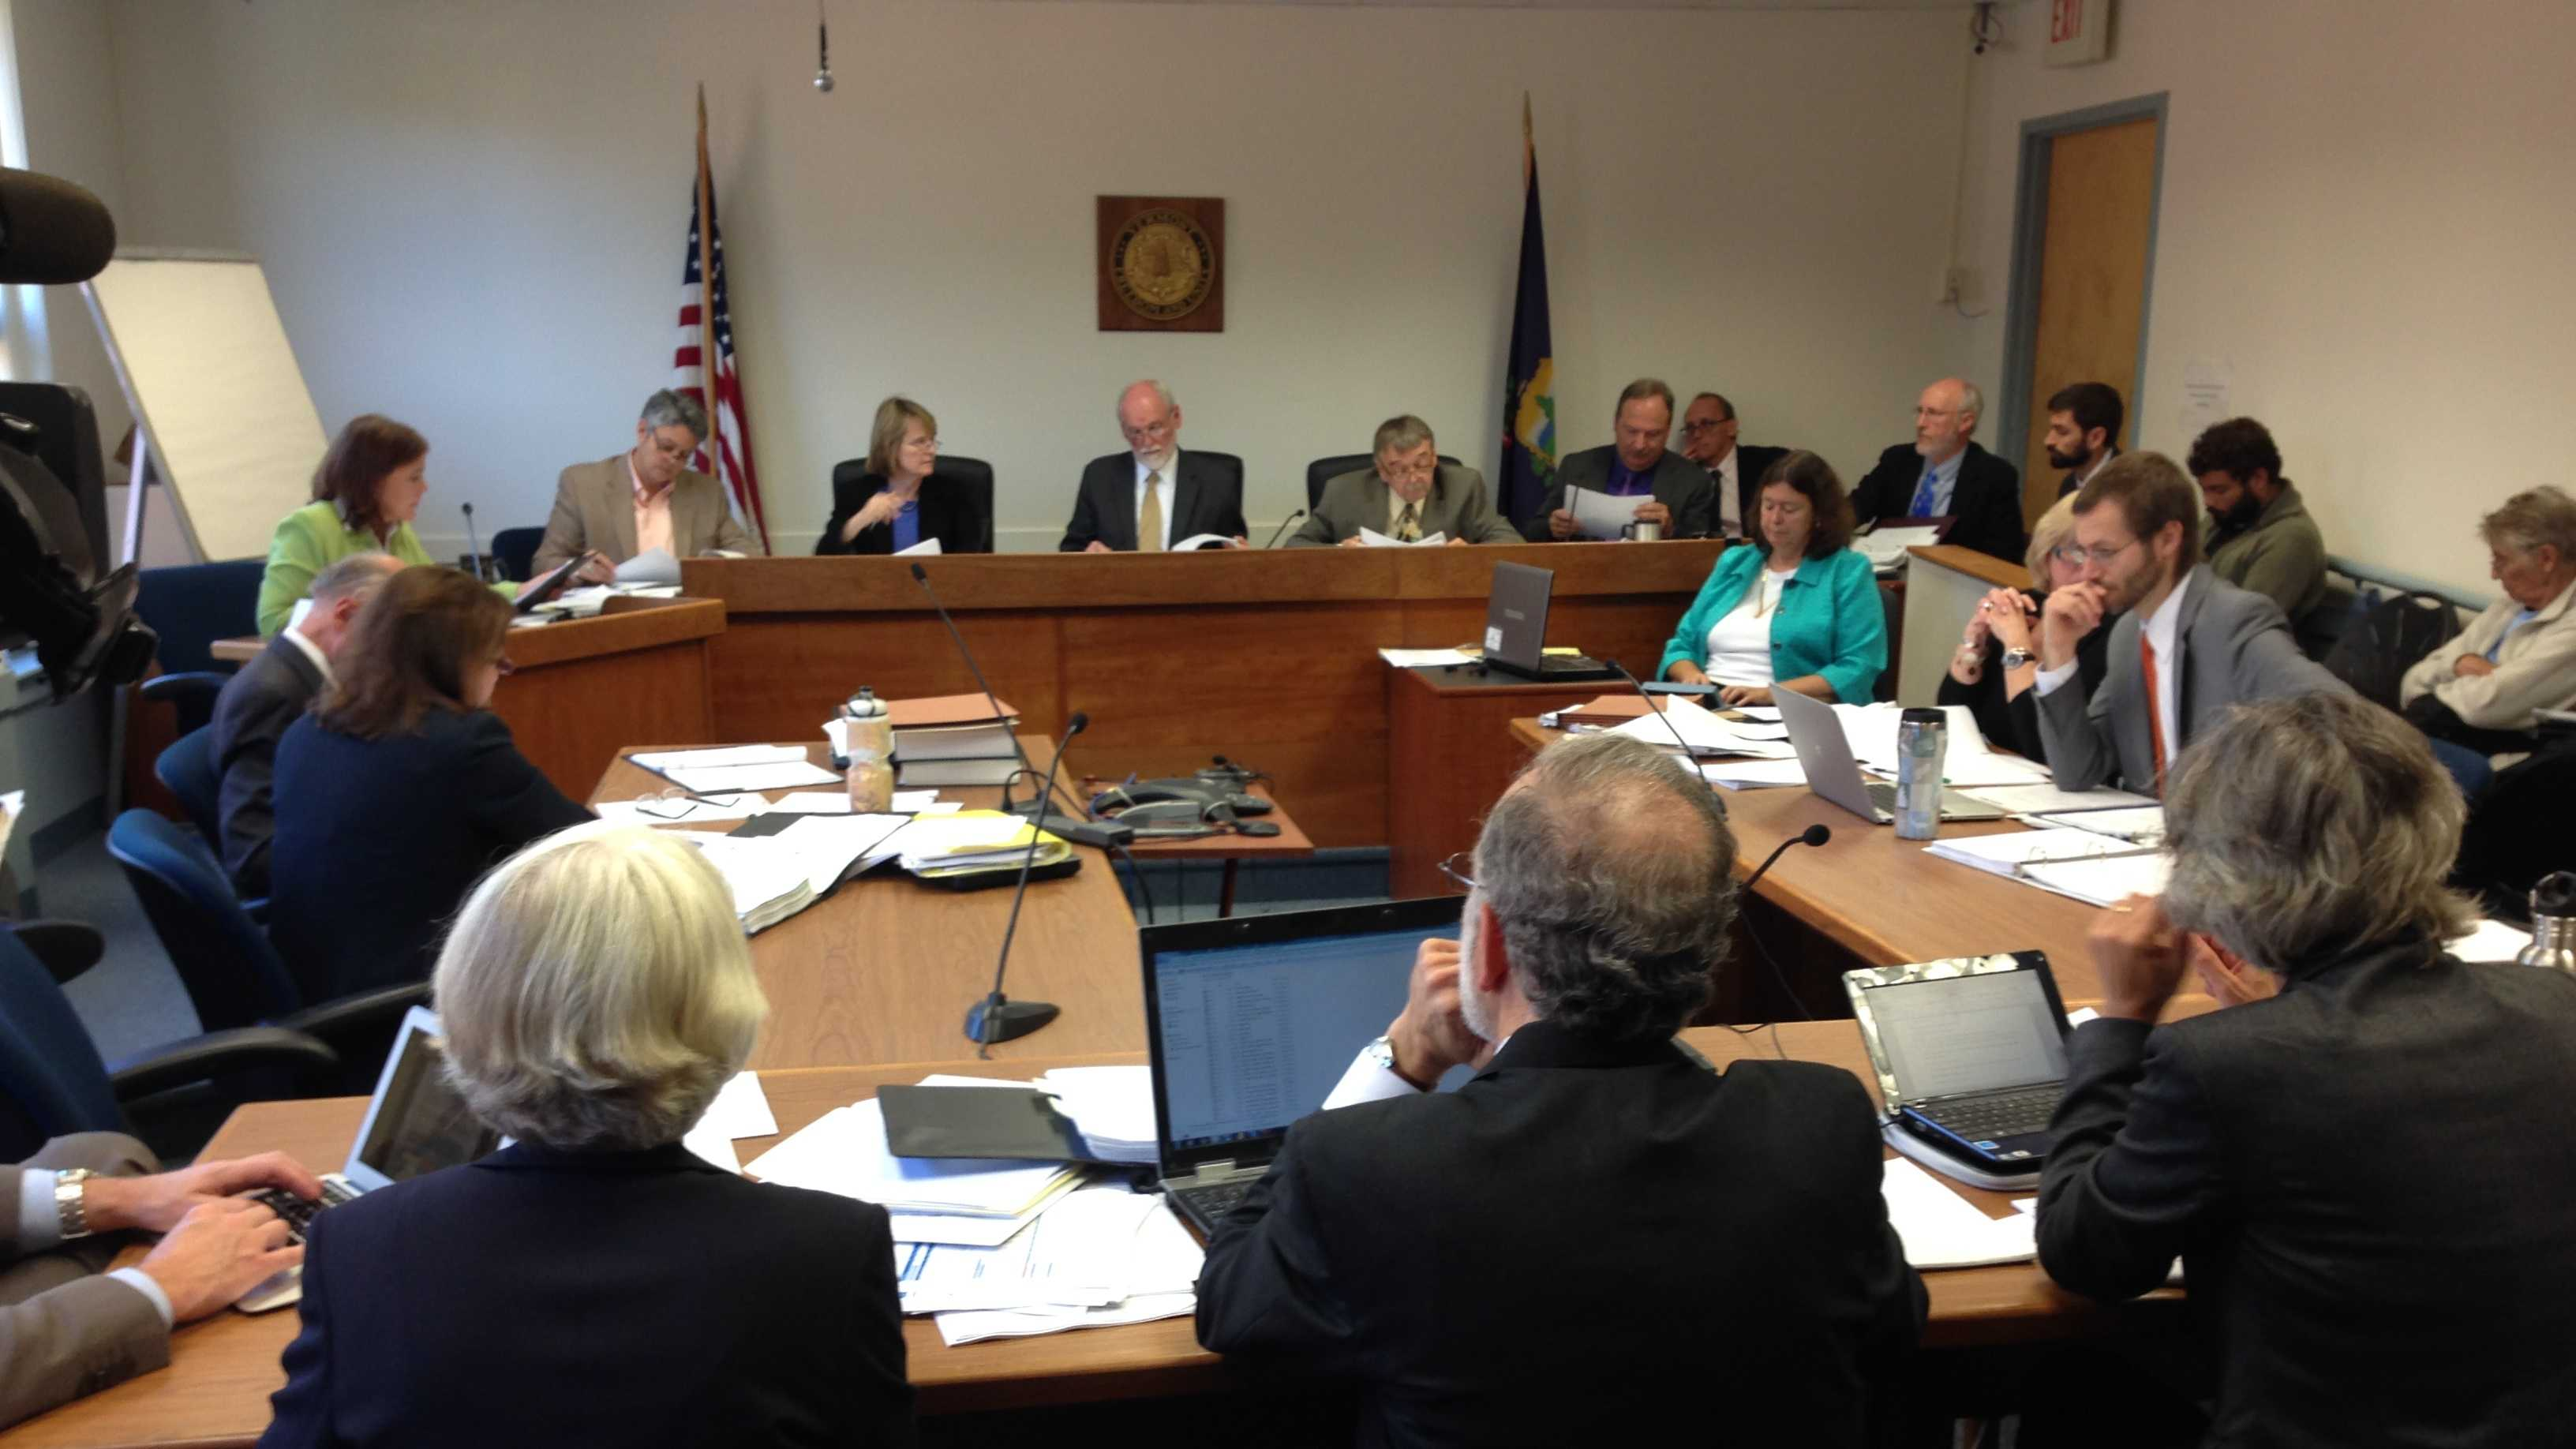 The Public Service Board held hearings Sept. 26 on whether to reconsider approval of a natural gas pipeline to Middlebury.